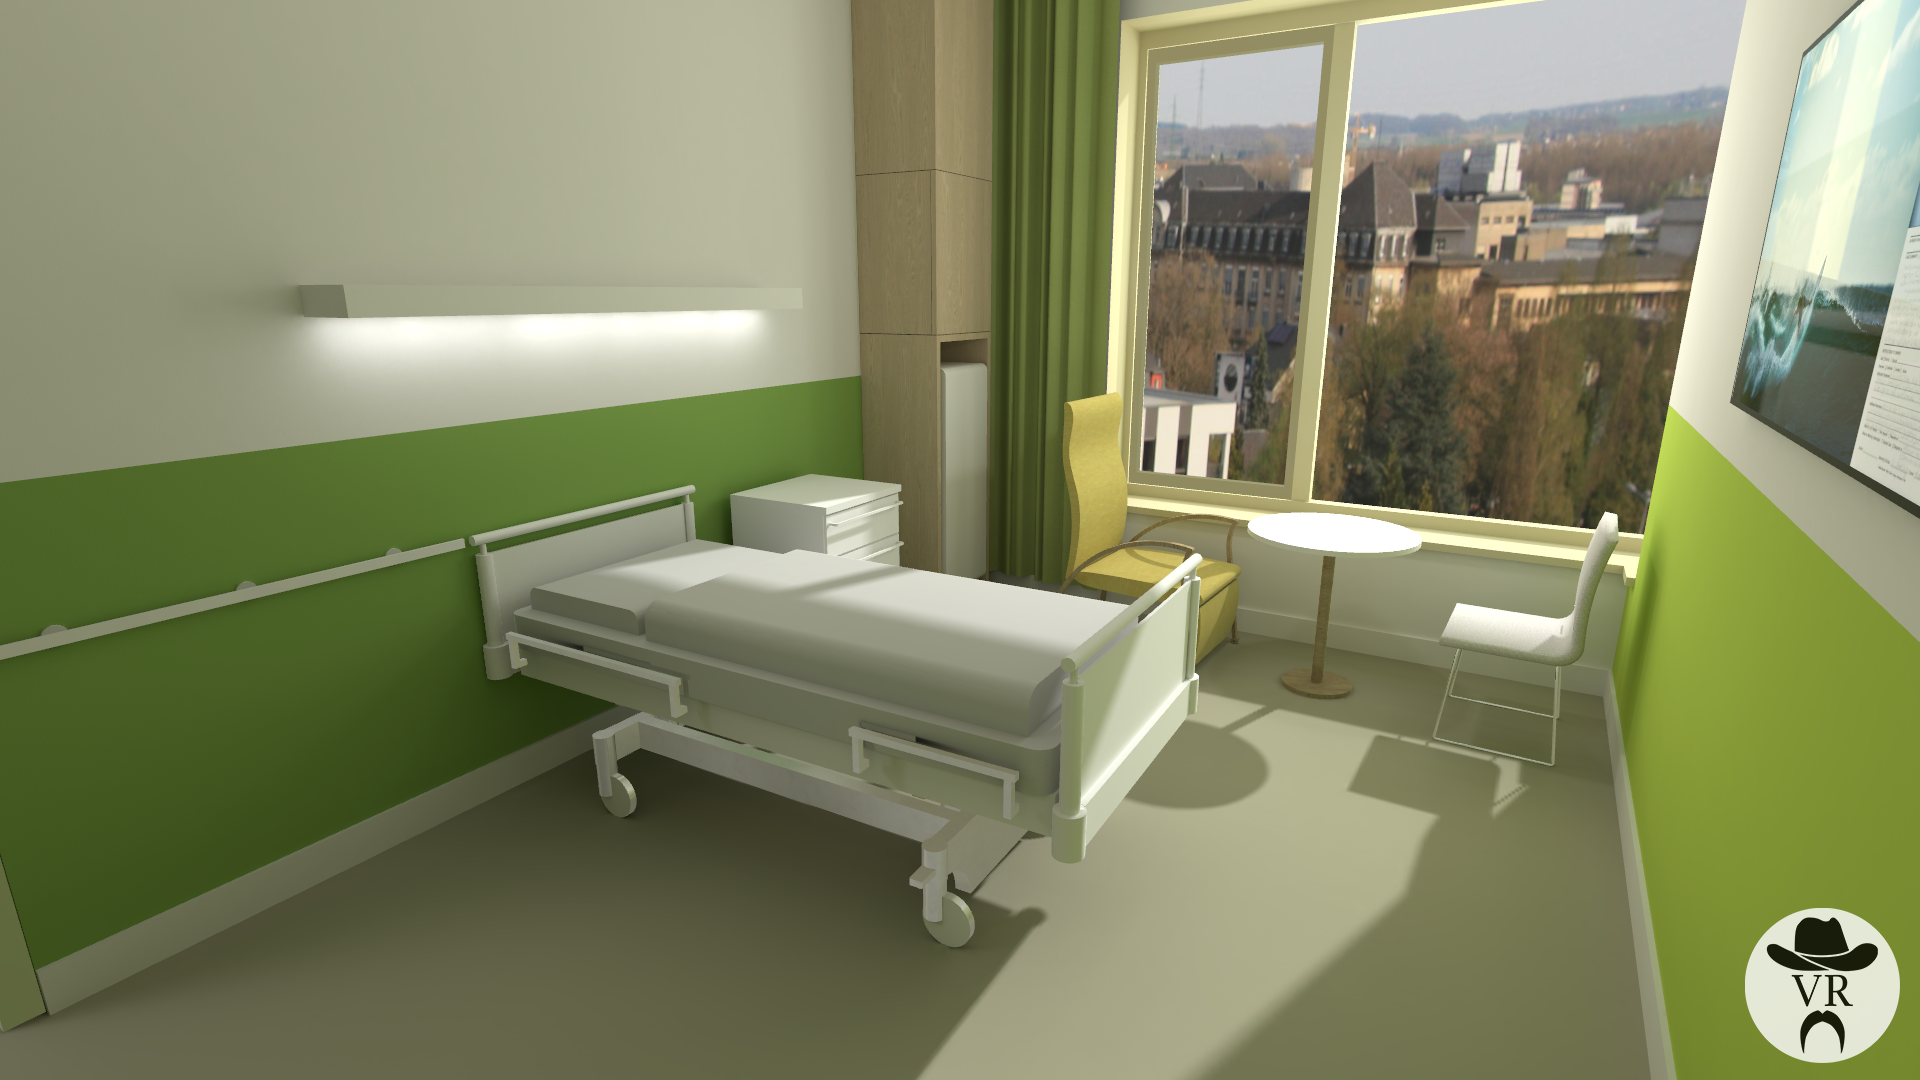 CHEM Virtual Reality Hospital Room